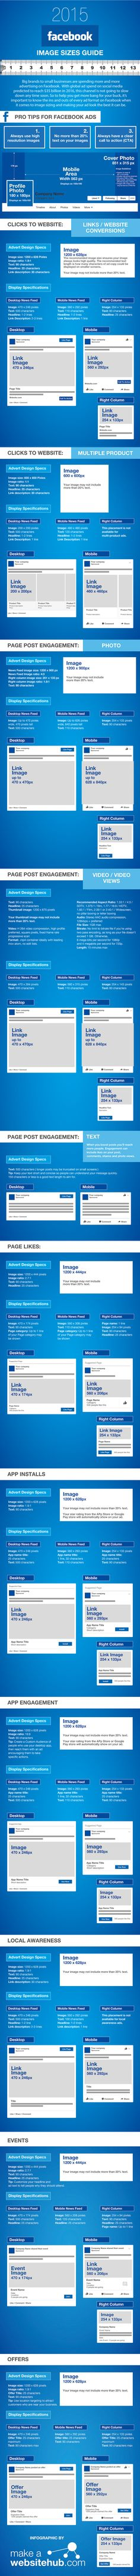 The Ultimate Facebook Image Sizes Guide - #infographic